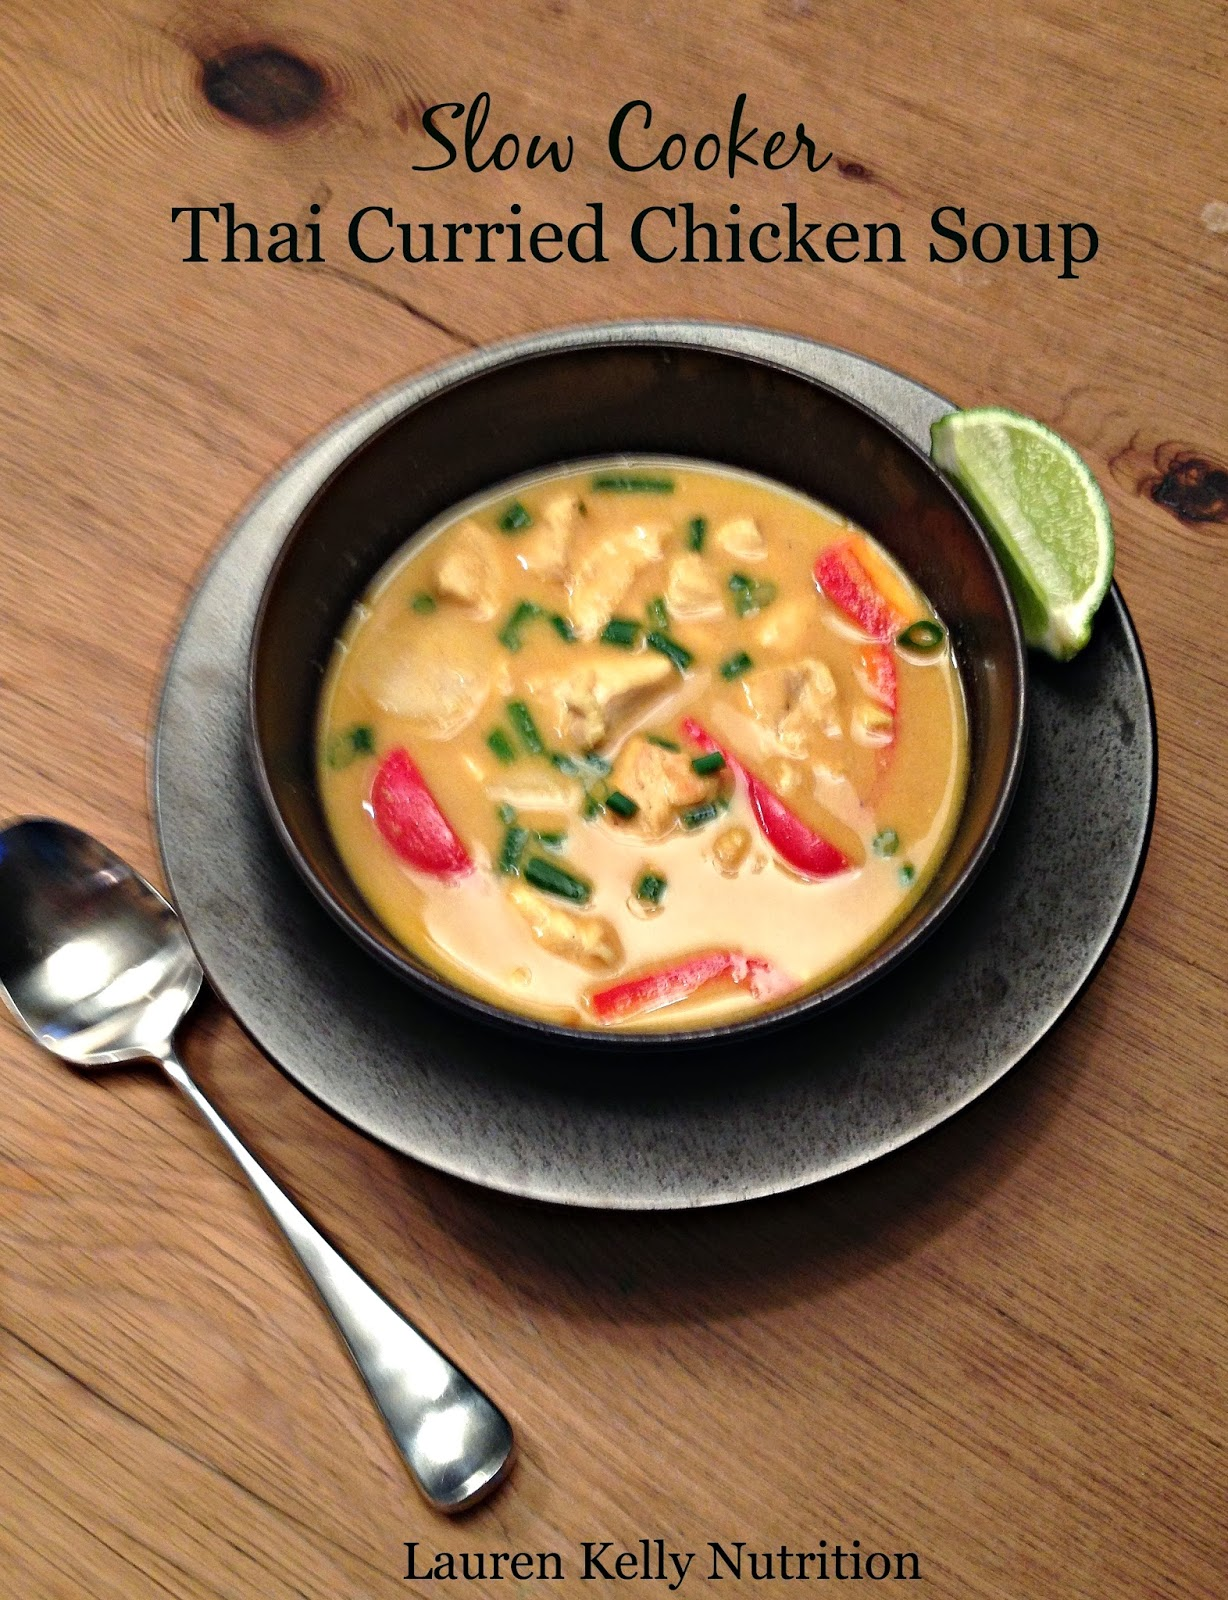 Fast healthy meal ideas include this Slow Cooker Thai Curried Chicken Soup